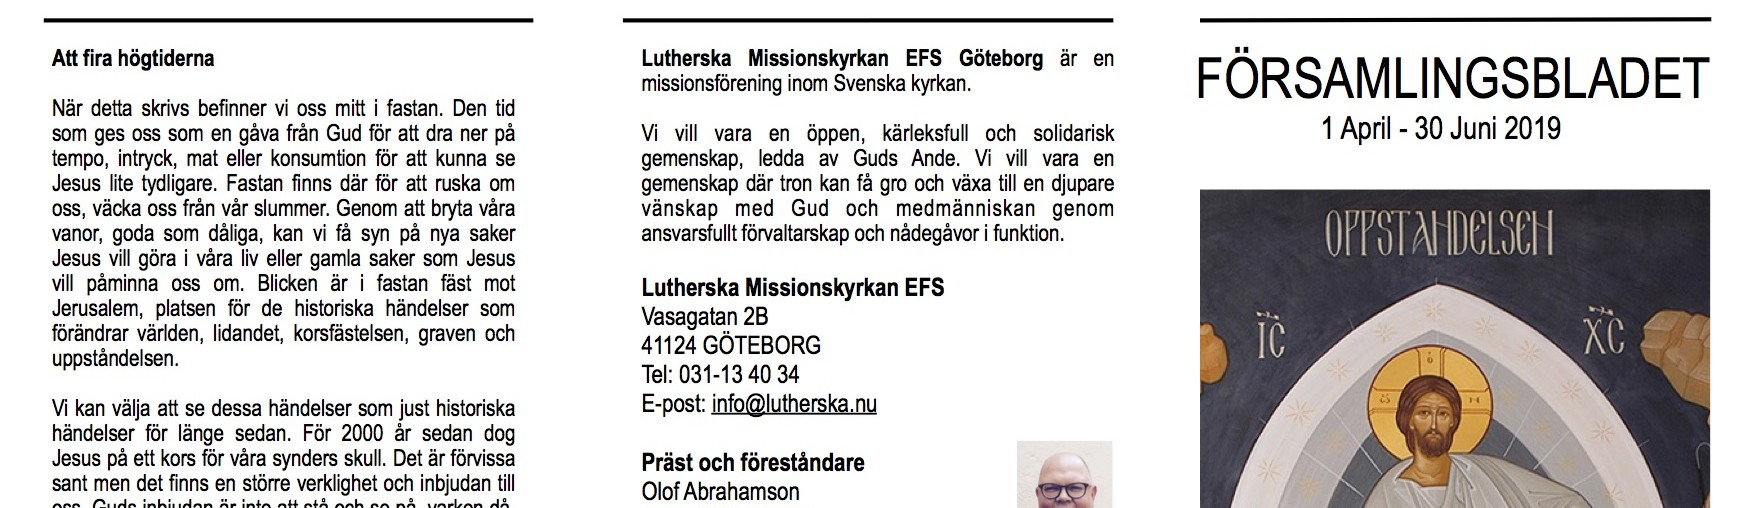 Församlingsblad april-juni 2019